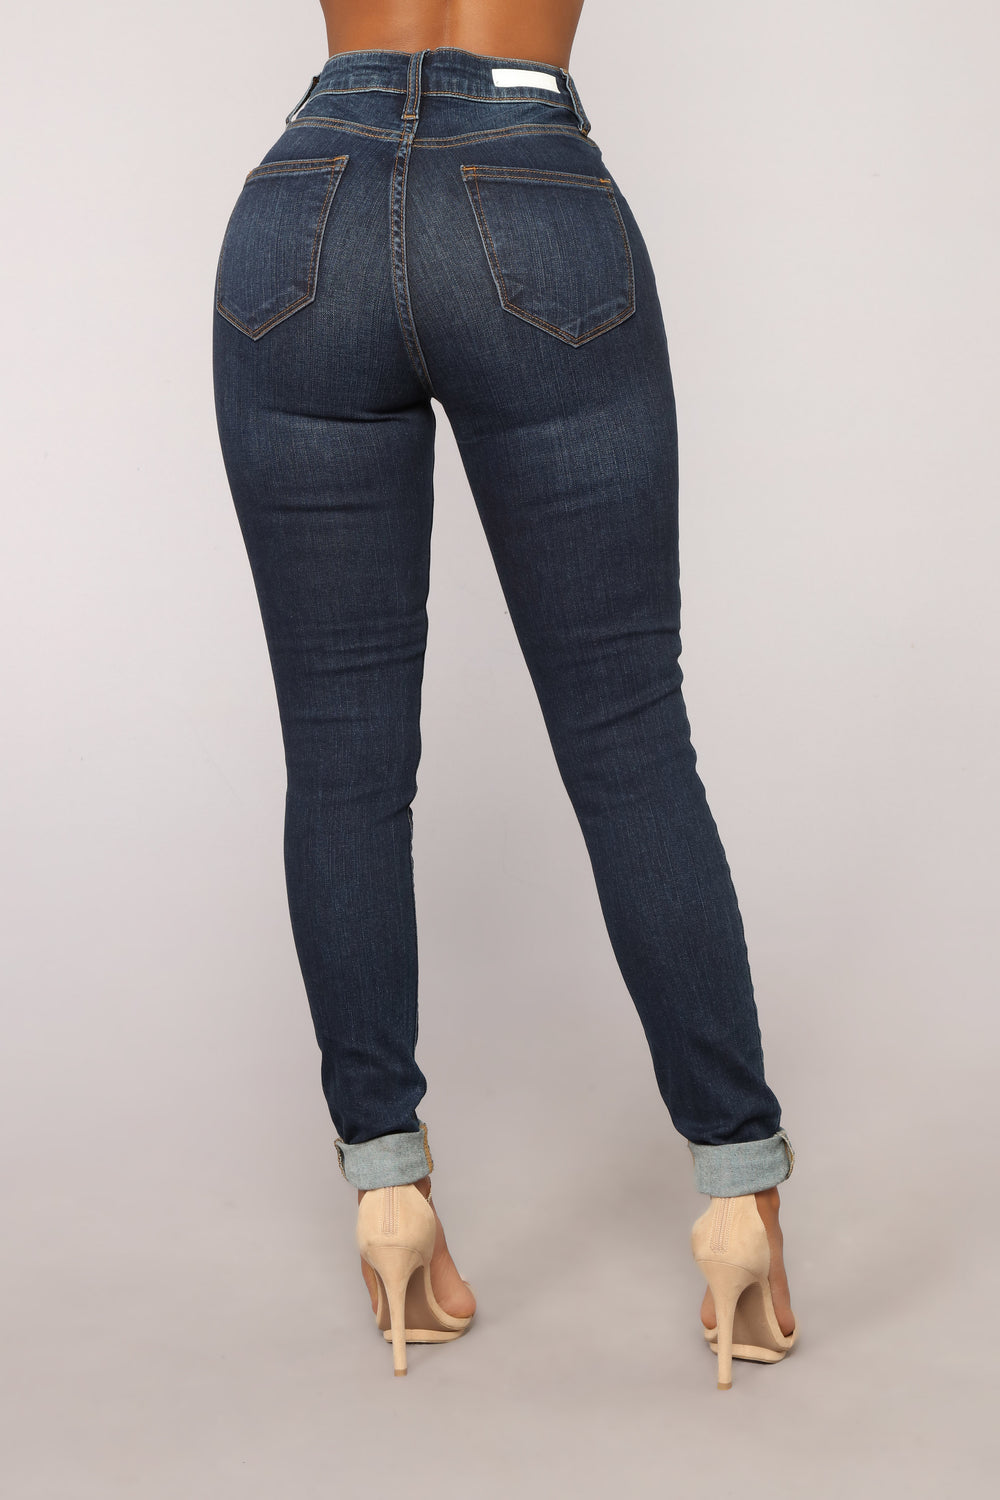 Eva High Rise Ankle Jeans - Dark Denim